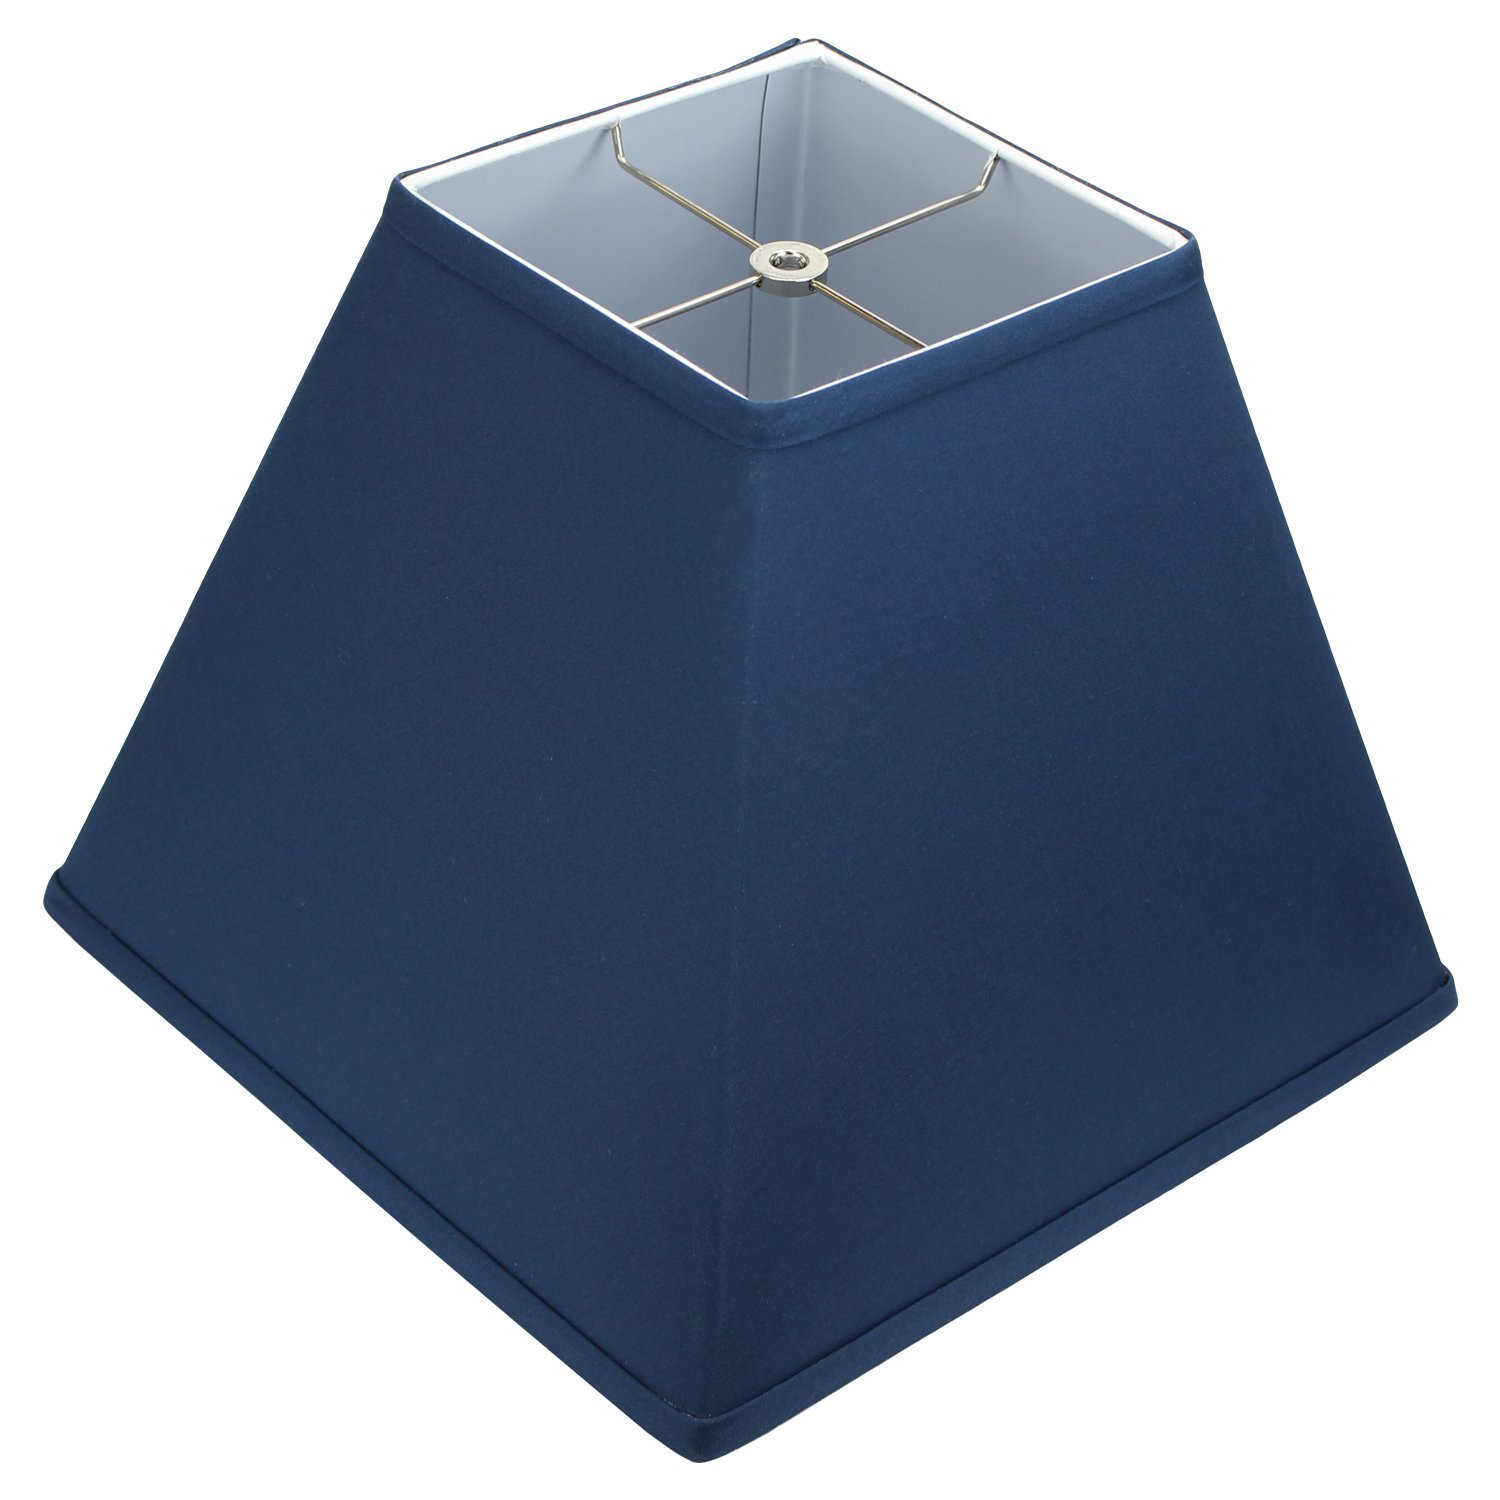 FenchelShades.com 6'' Top Dimension x 16'' Bottom Dimension 12'' Slant Height Lampshade USA Made (Navy Blue)